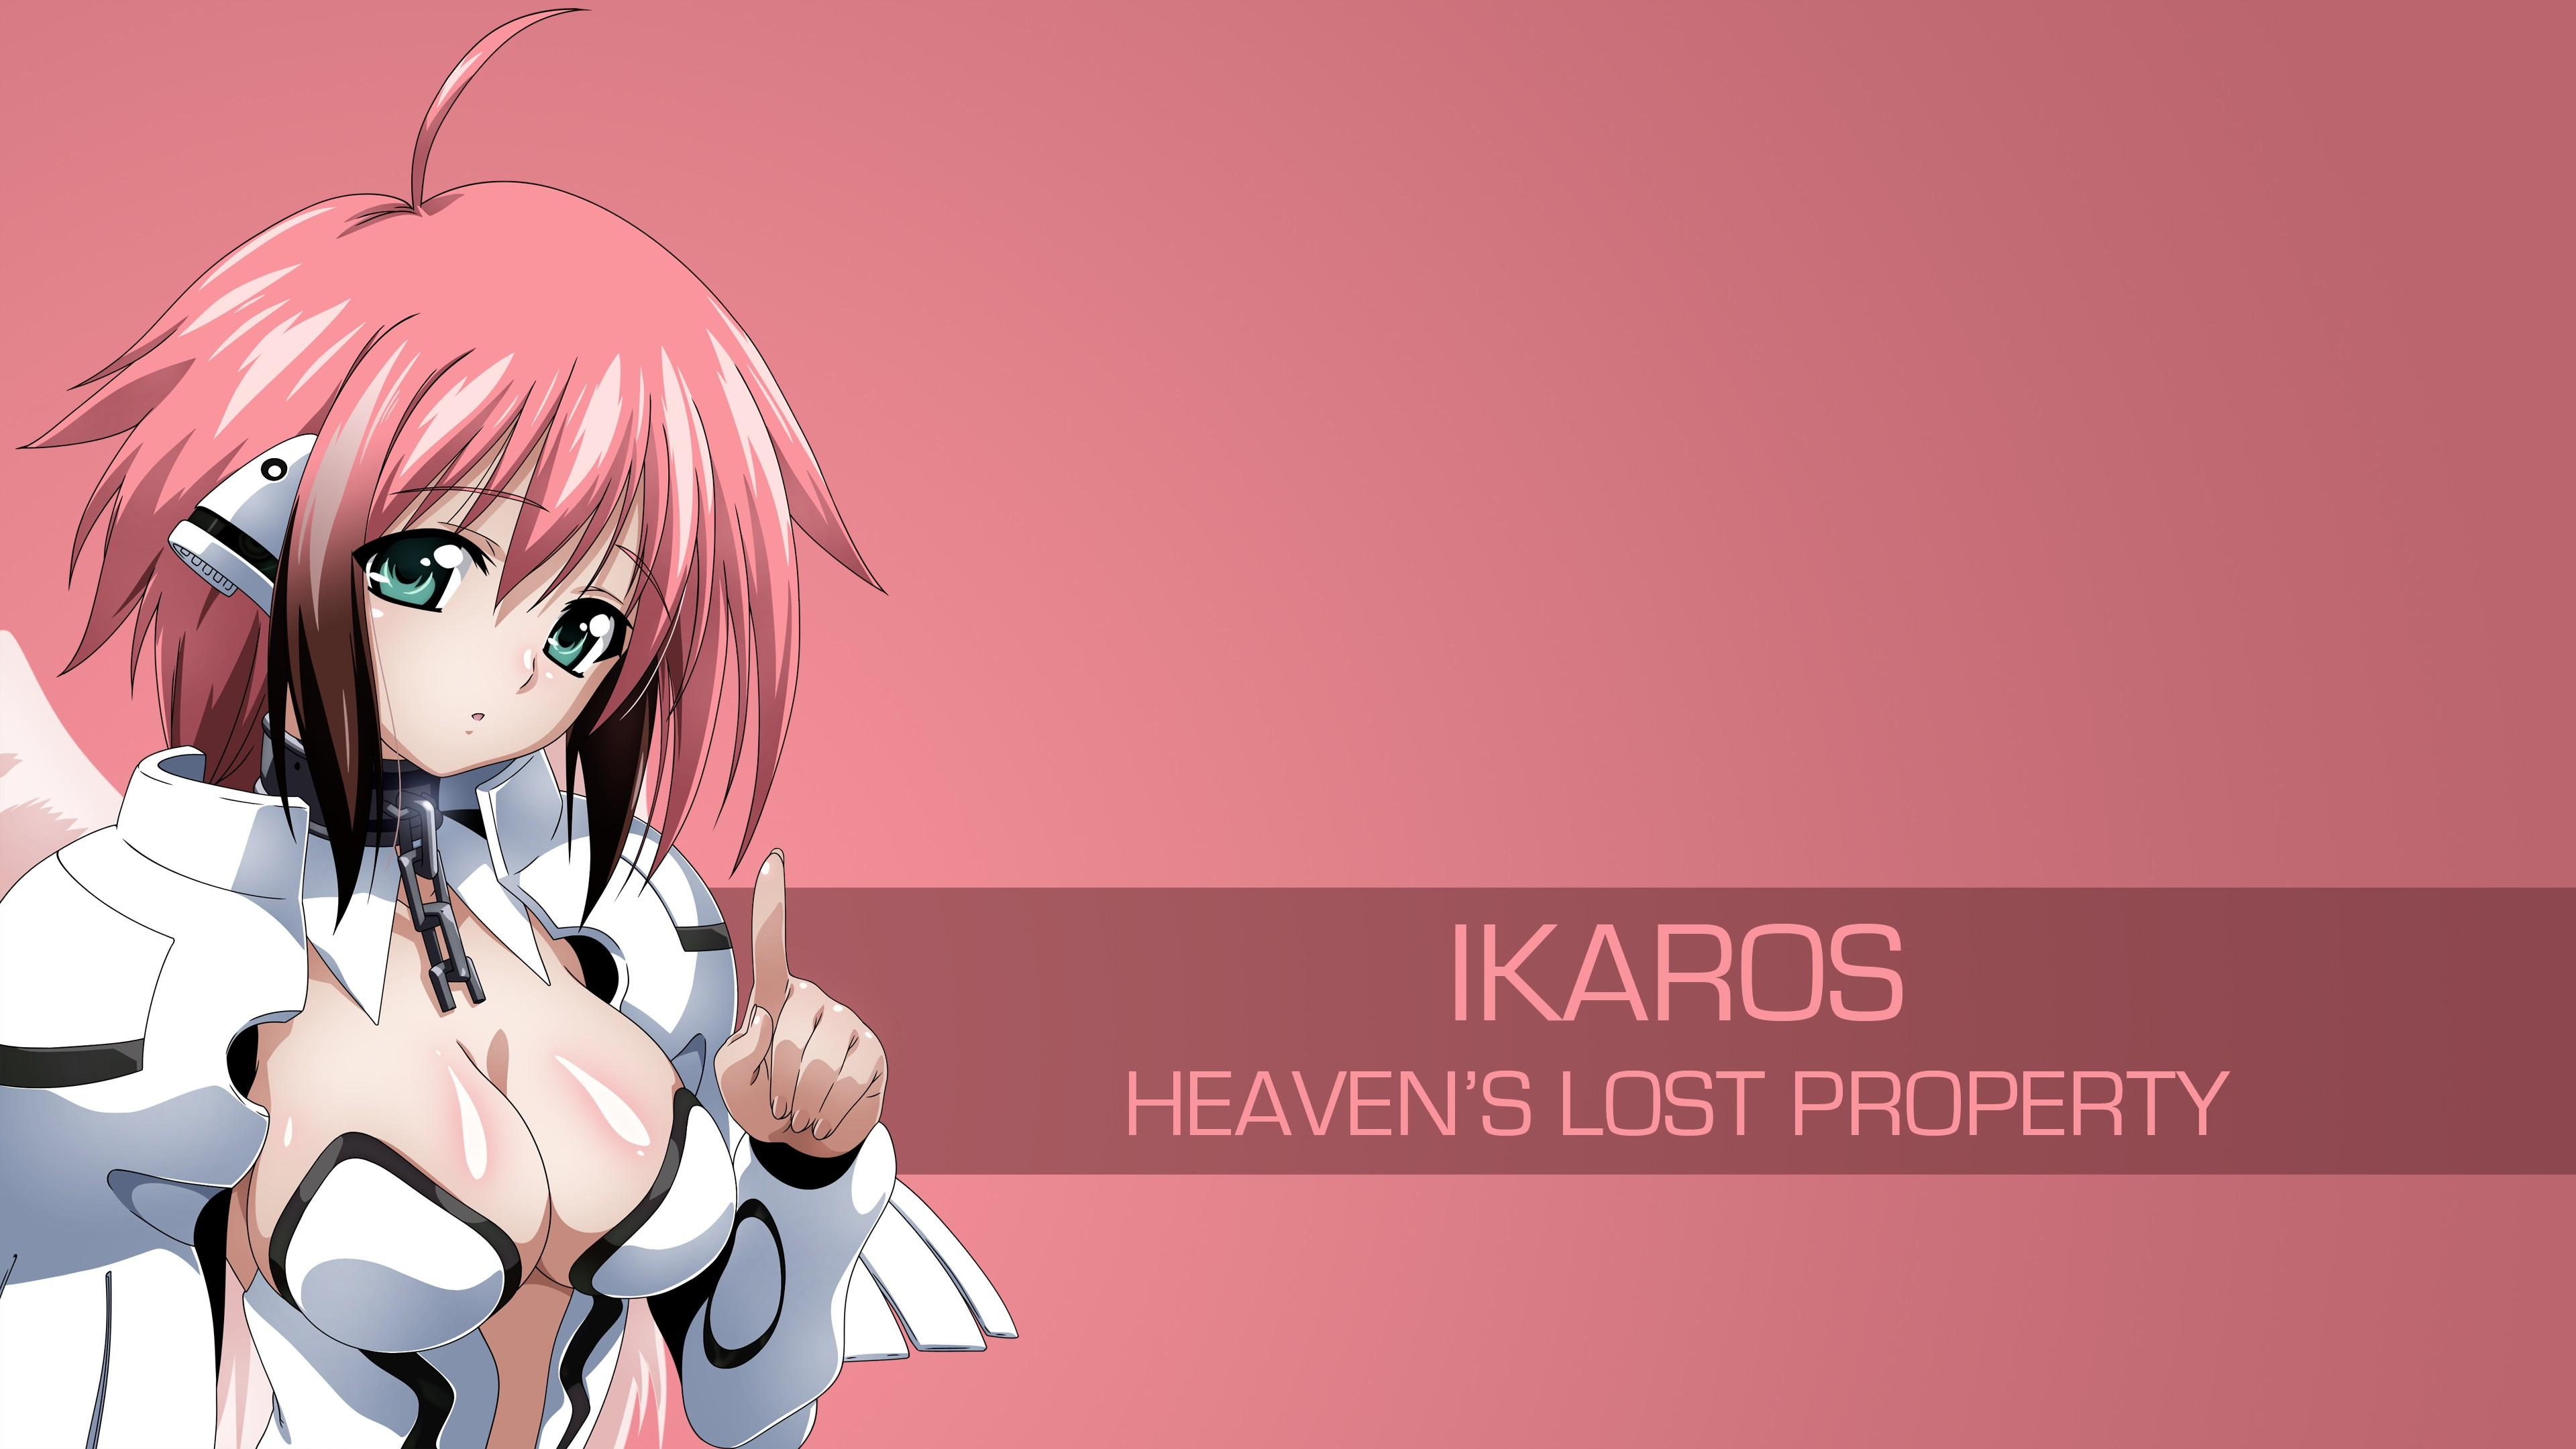 Wallpaper from anime category